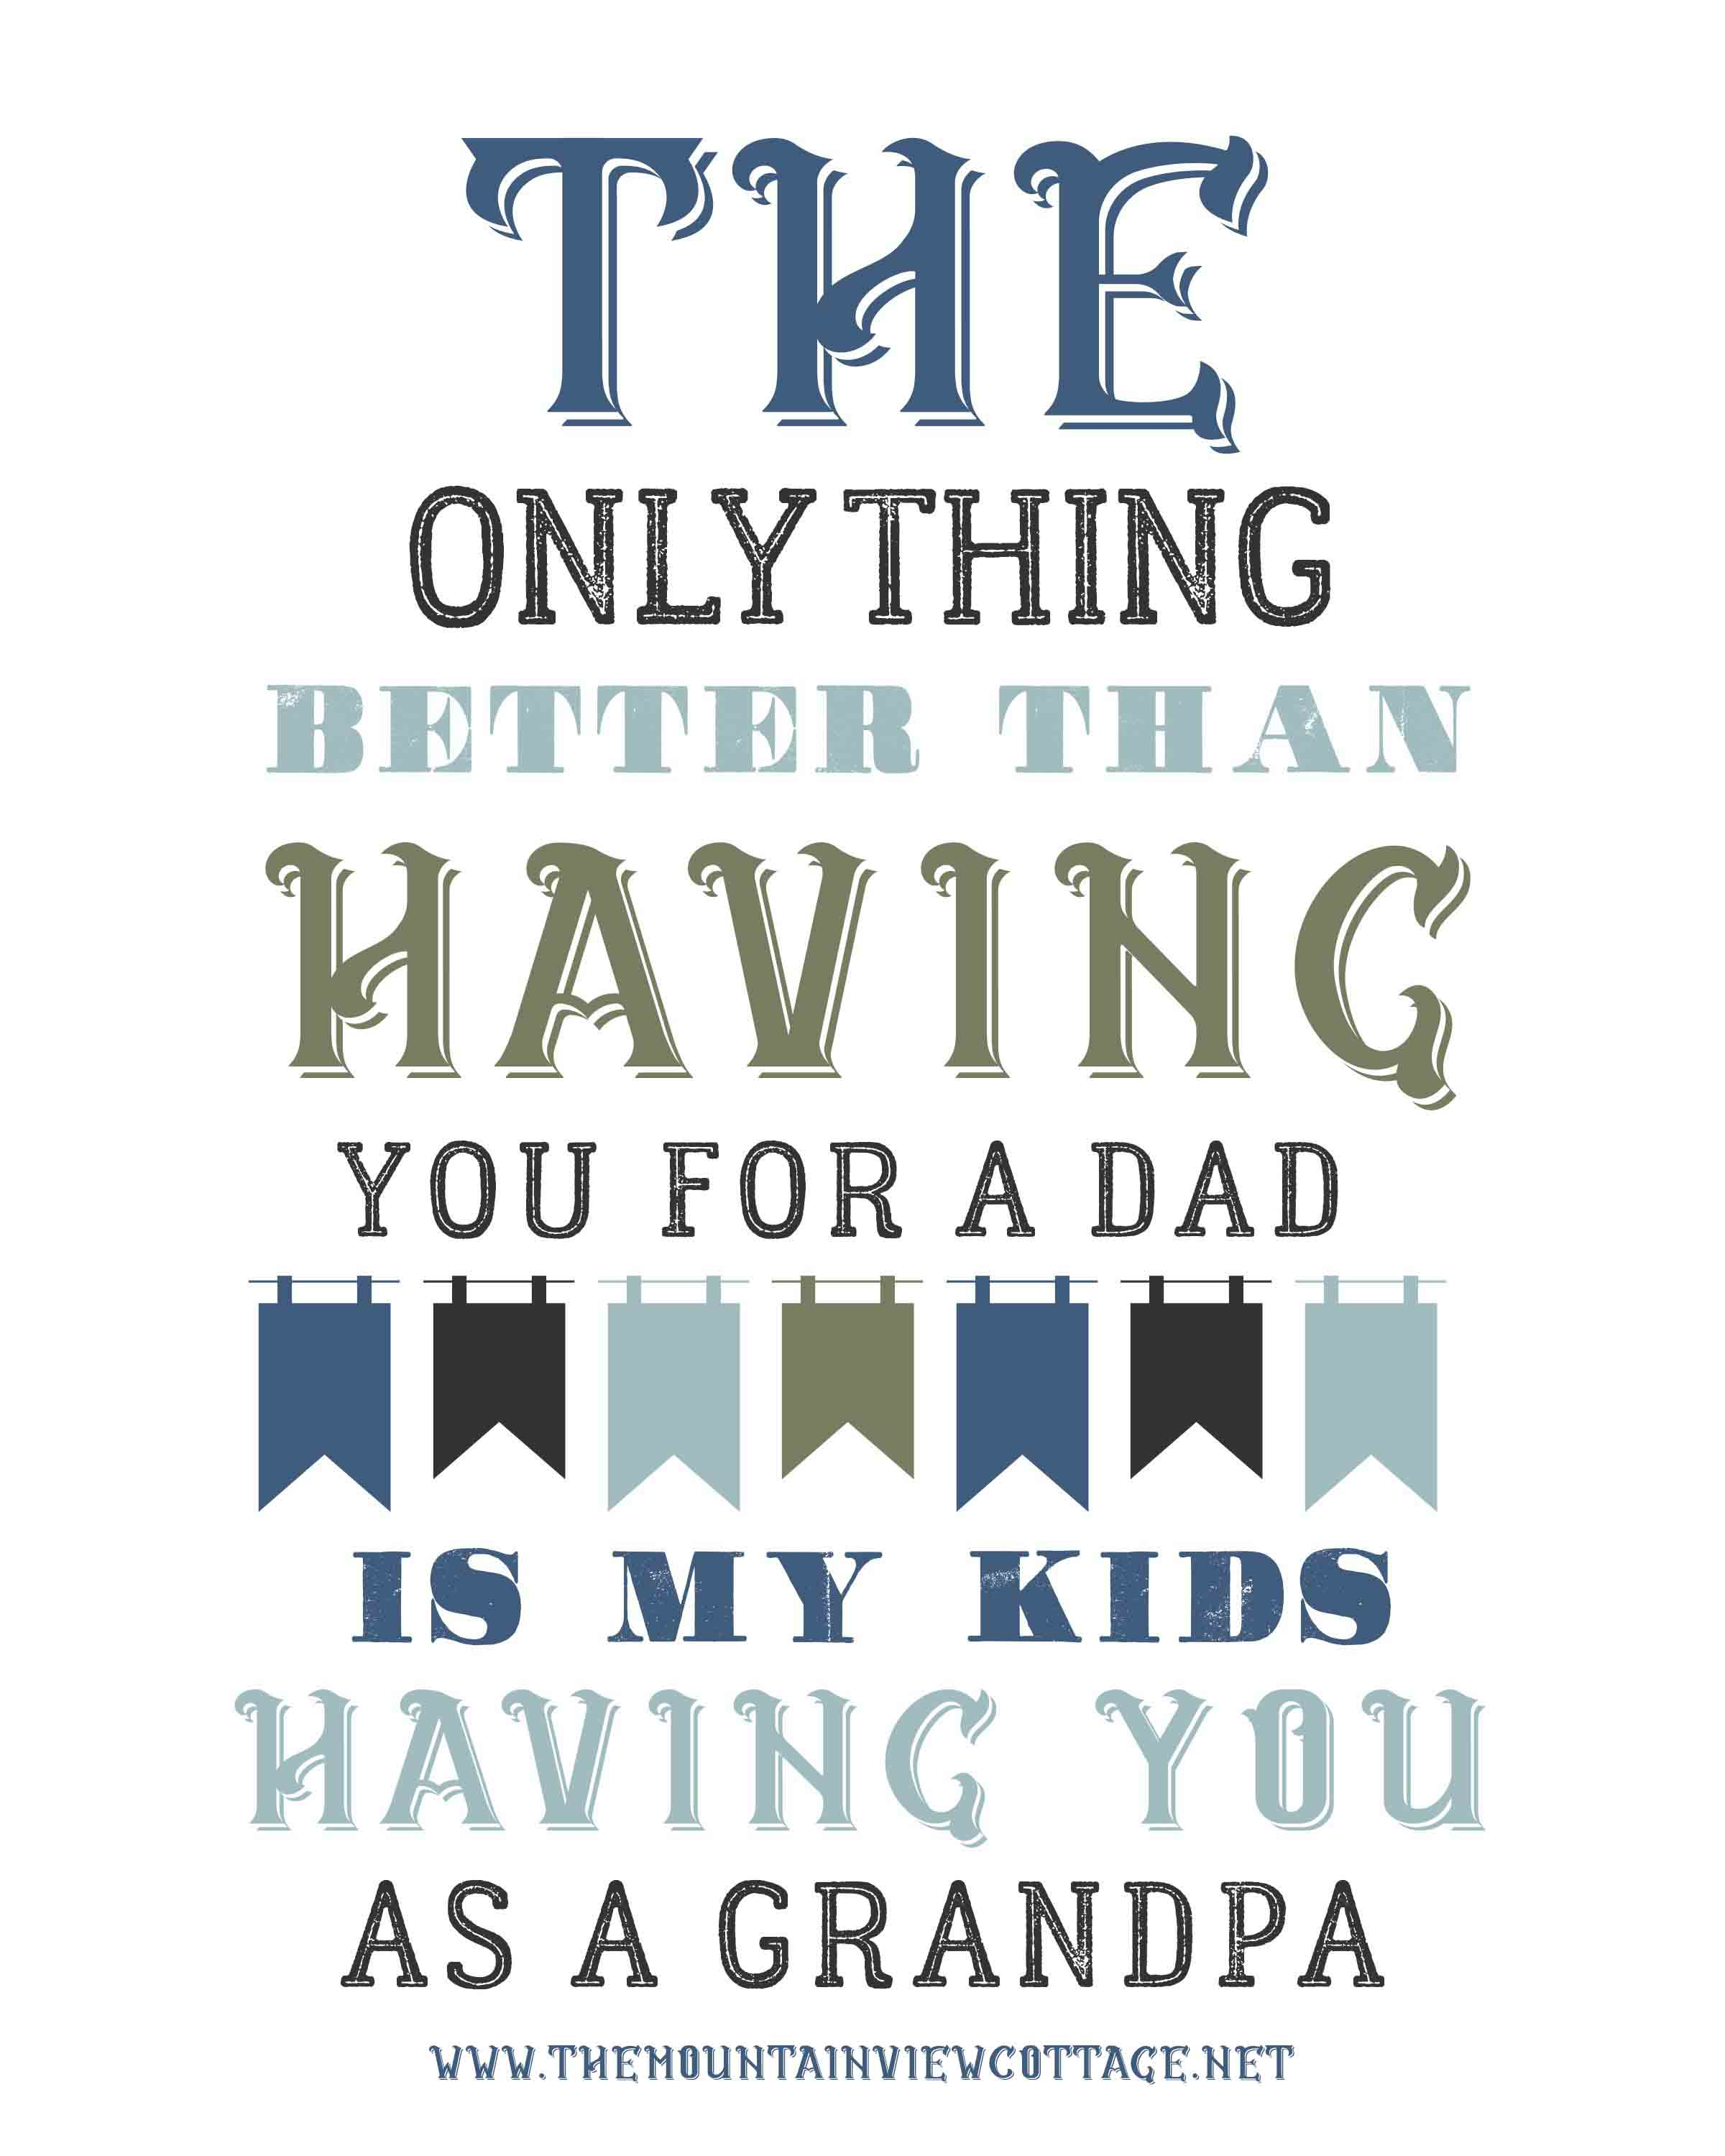 Dad quotes-best dad quotes-good dad quotes-grandpa quotes-the only thing better than having you for a dad is my kids having you for a grandpa